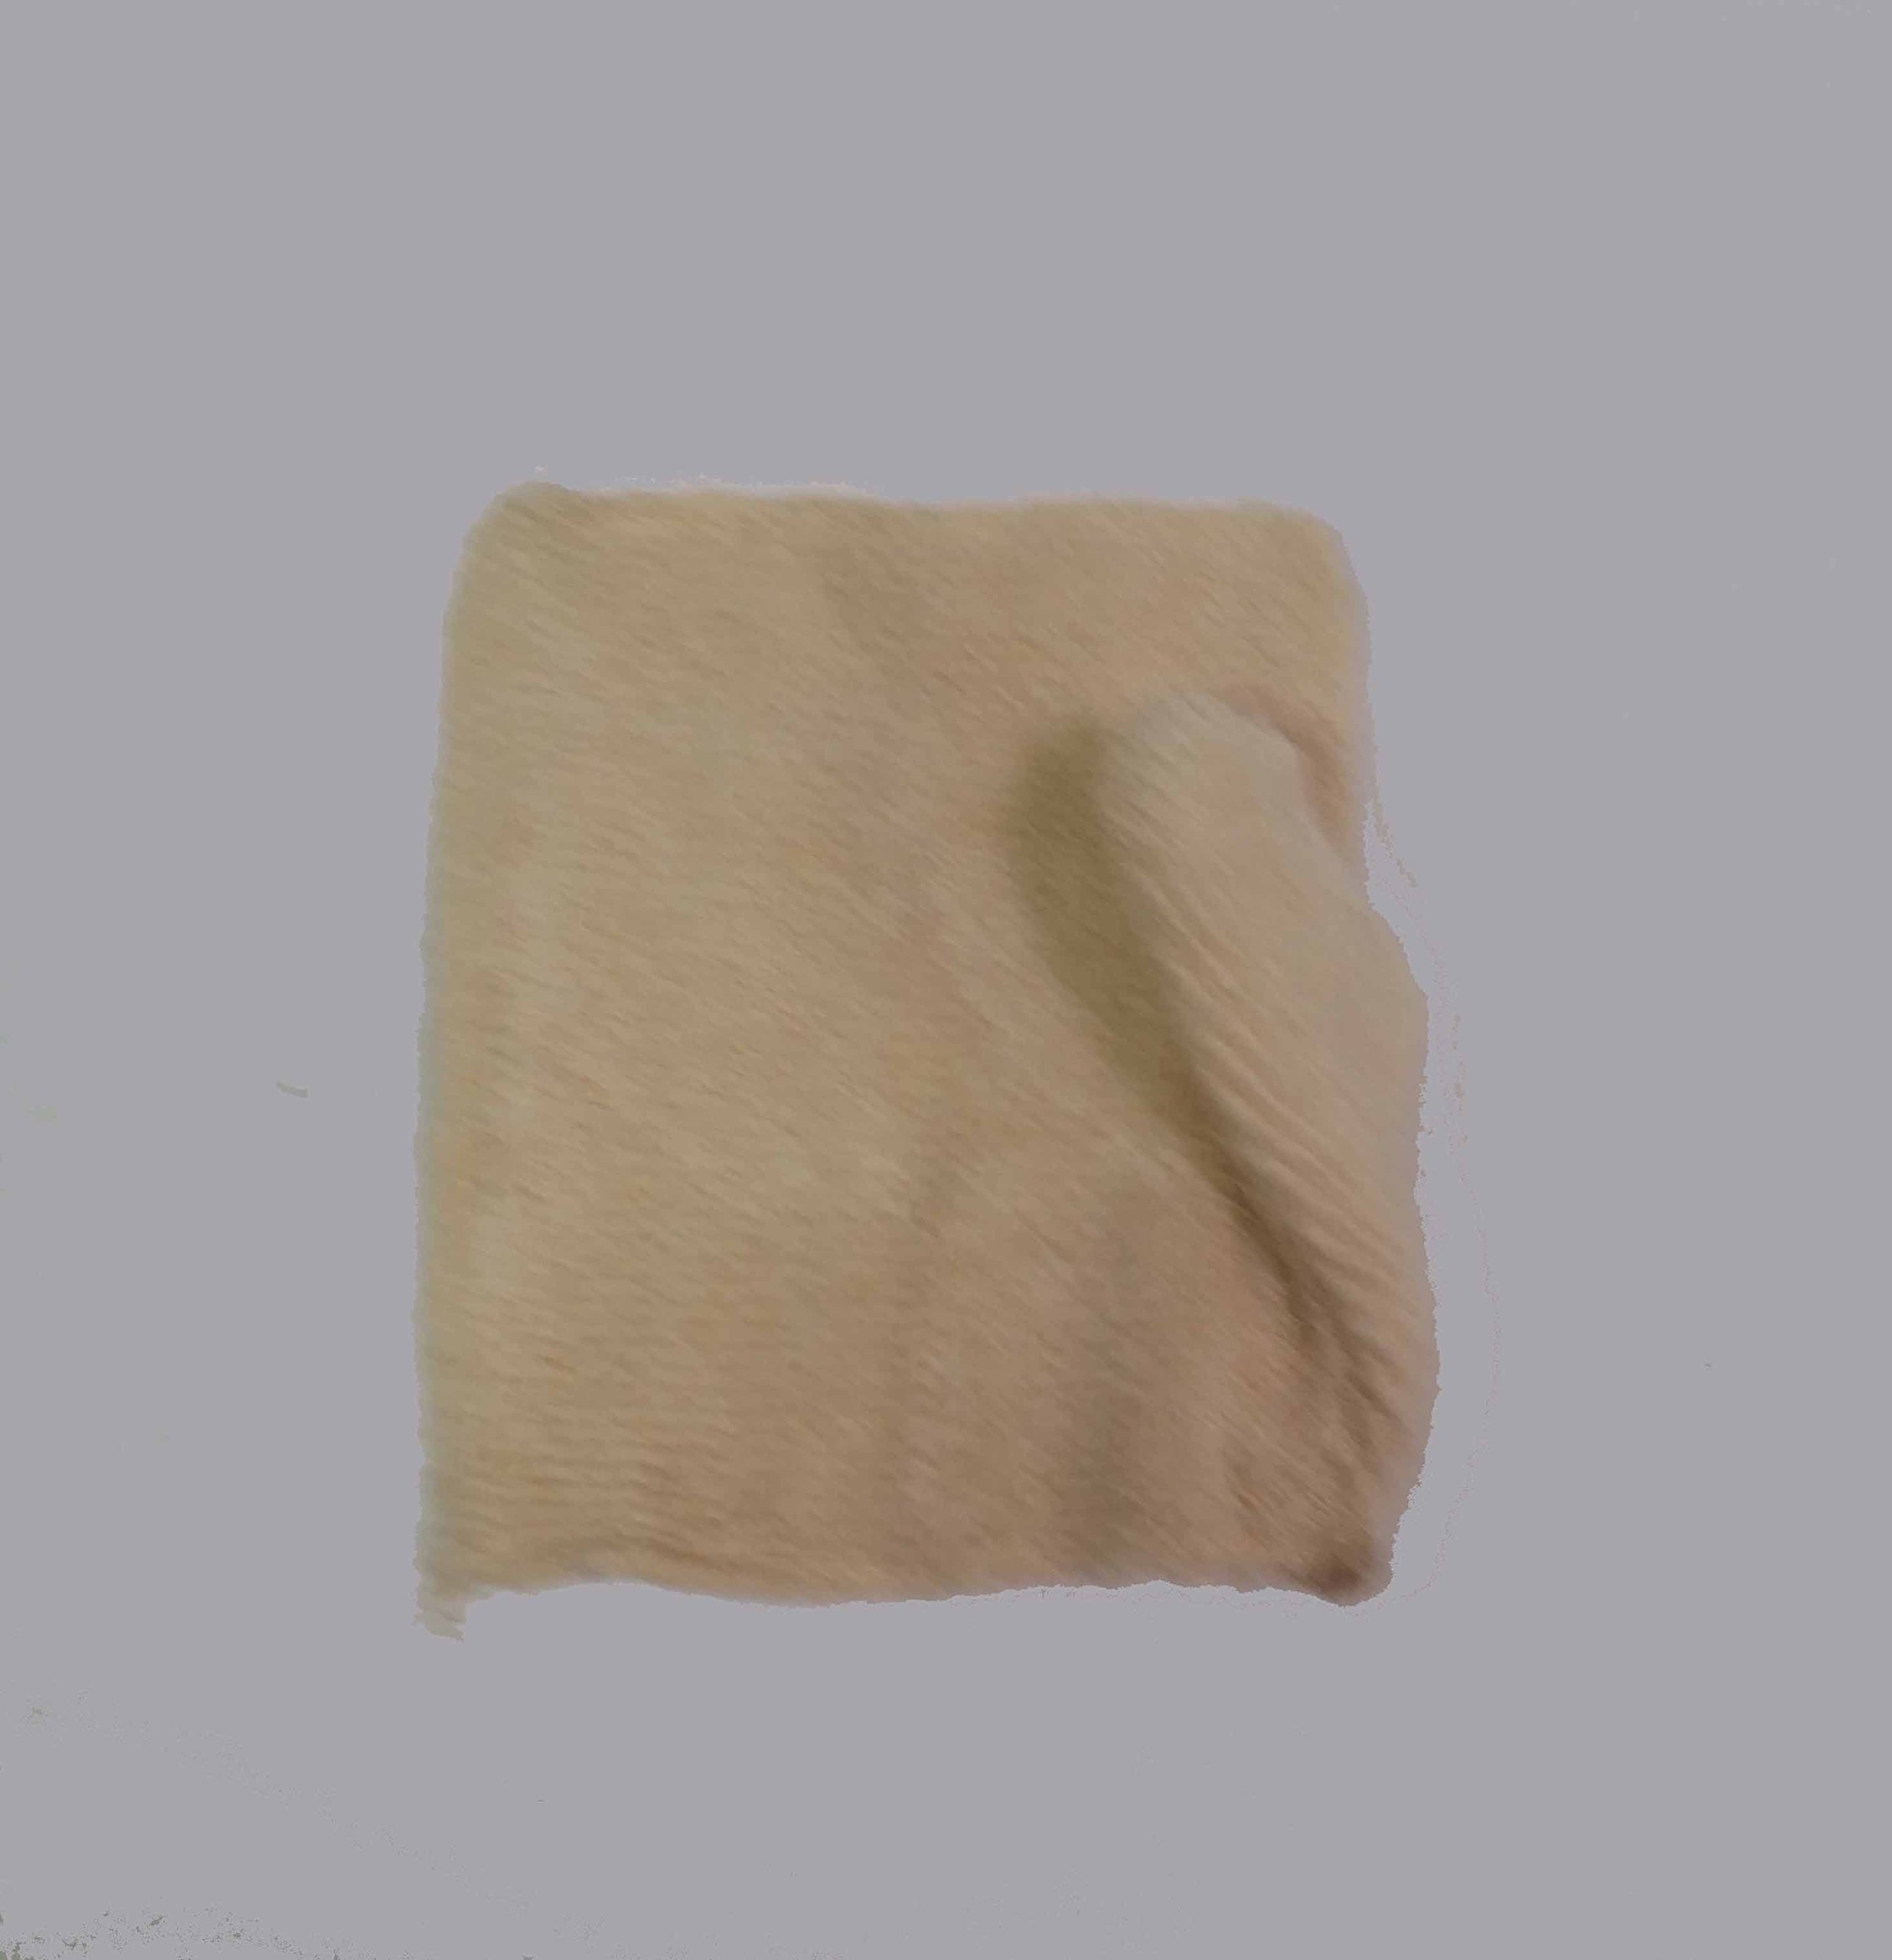 24- Oven Glove - Heavy Teri-Loop-Out Appx. 450°F Protection